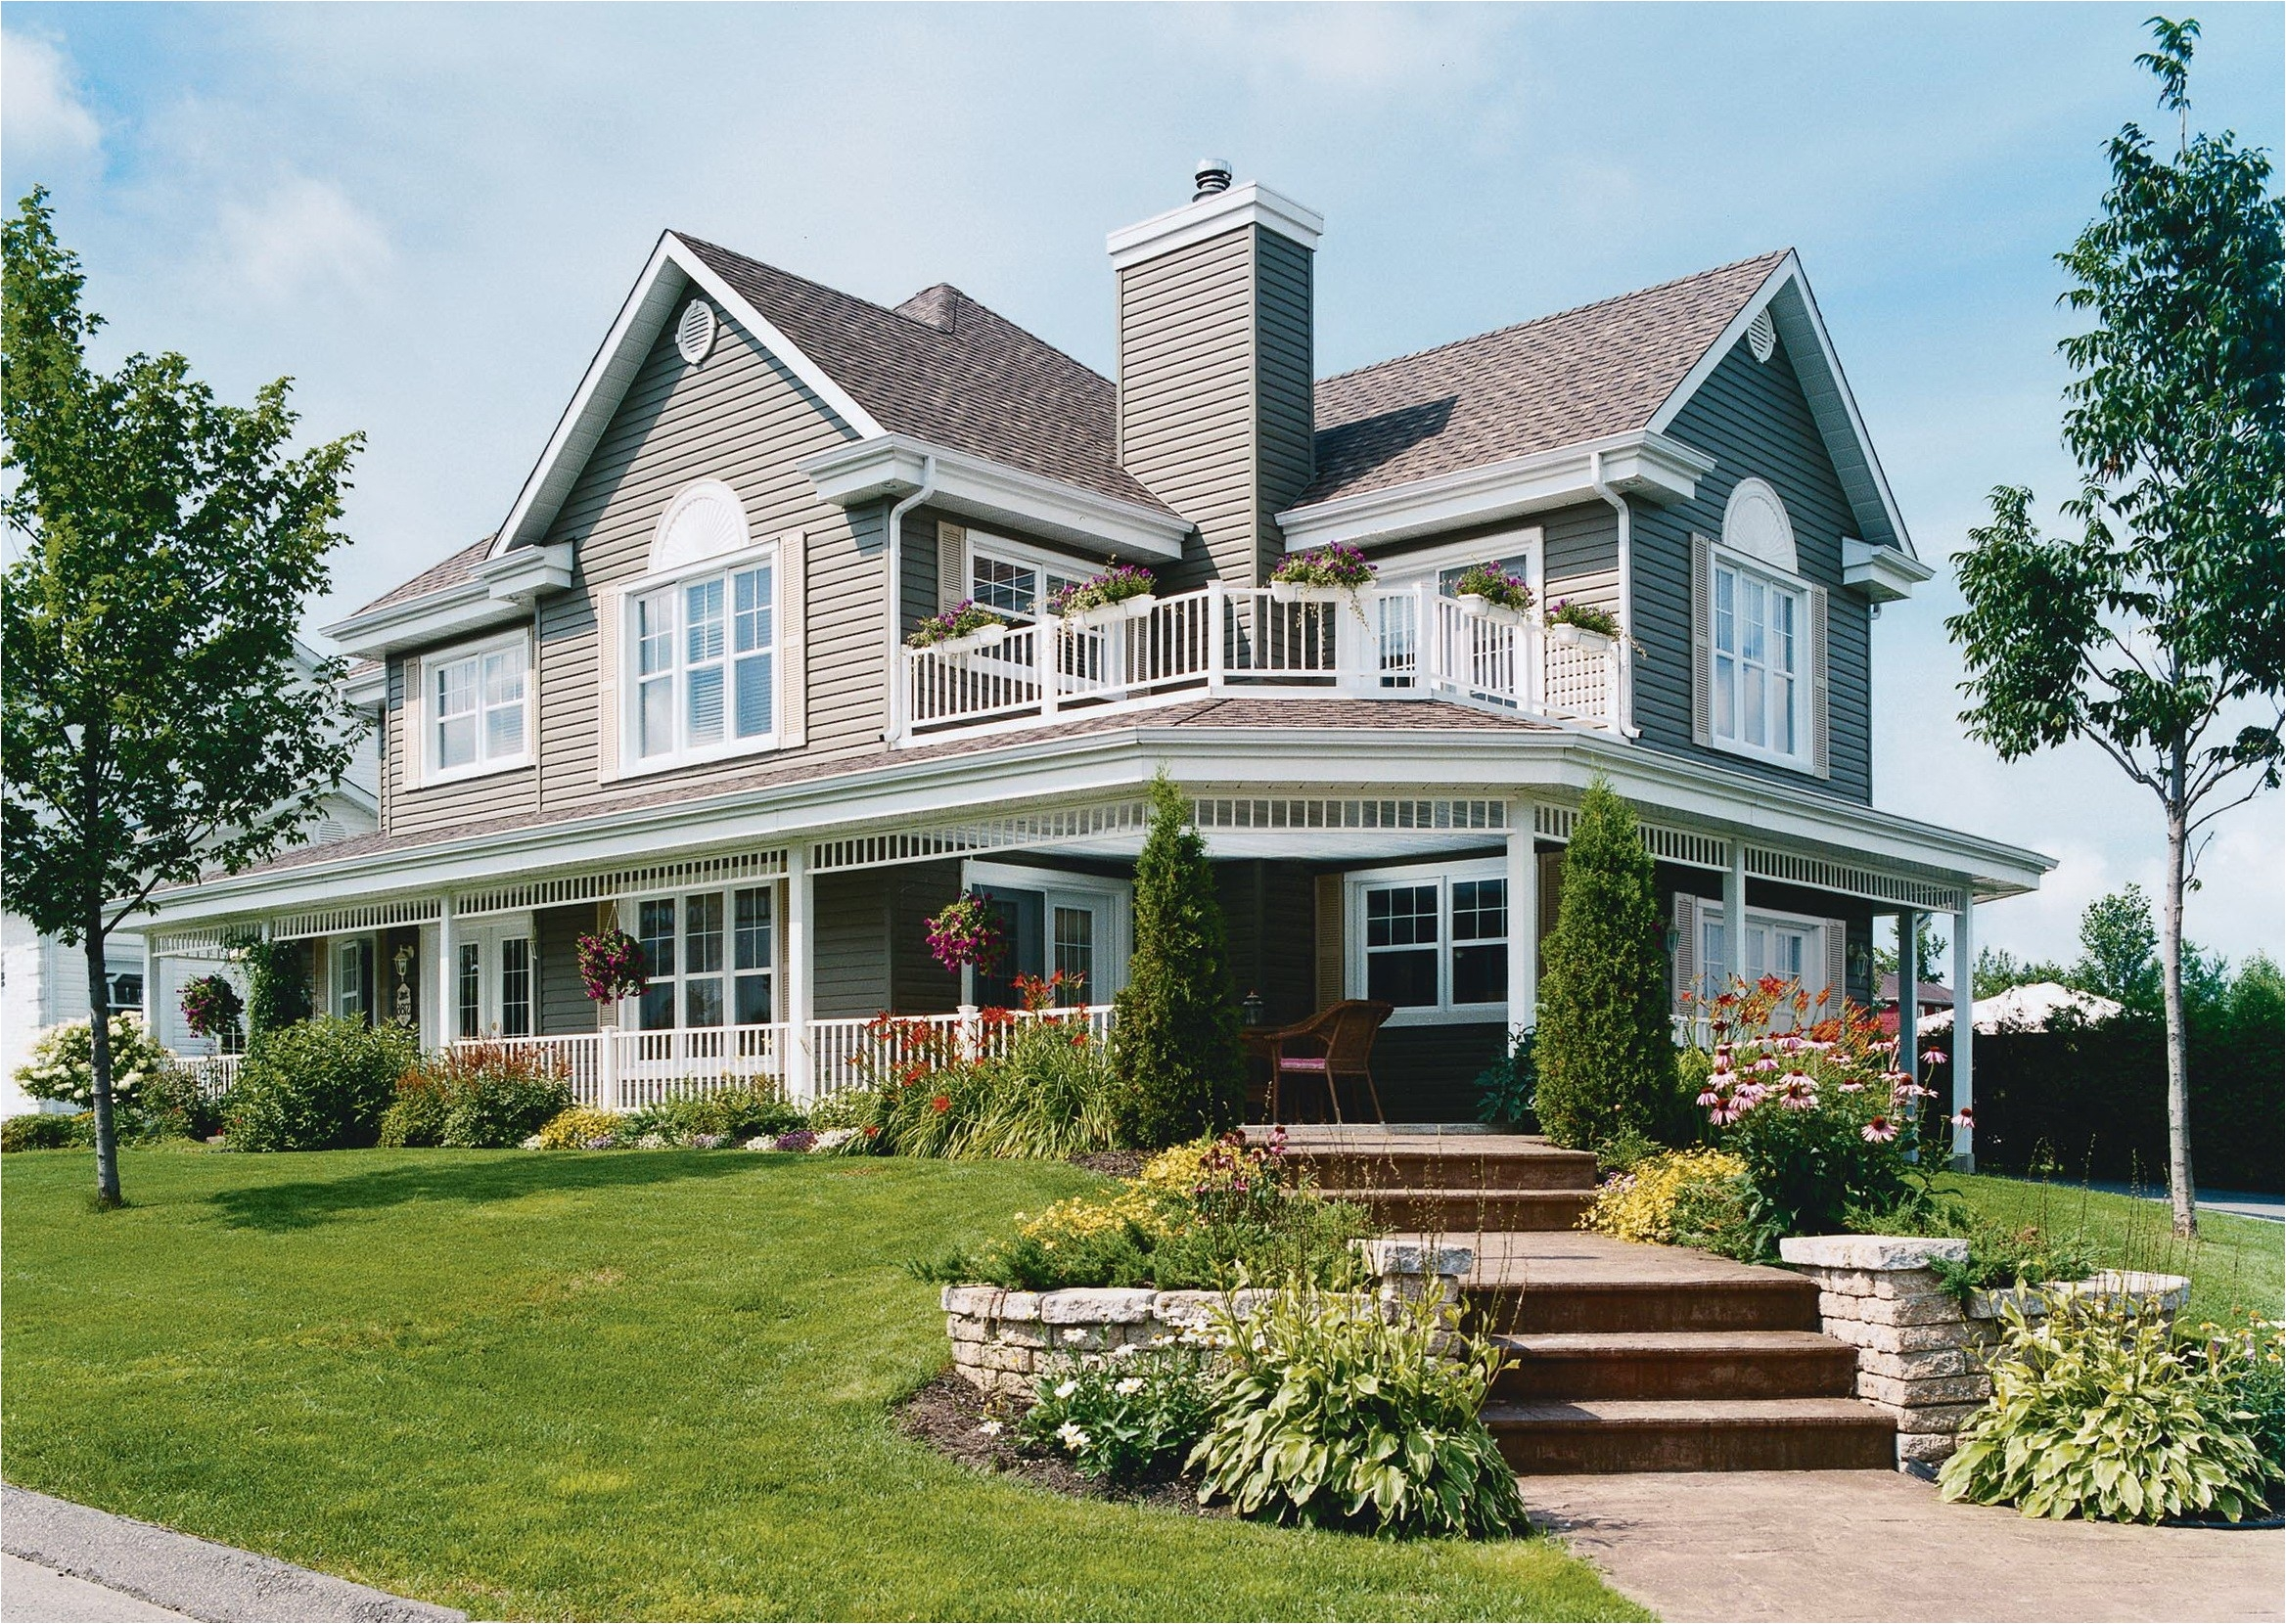 house plans ranch style unique american home plans best home plan sites new house plan hdc